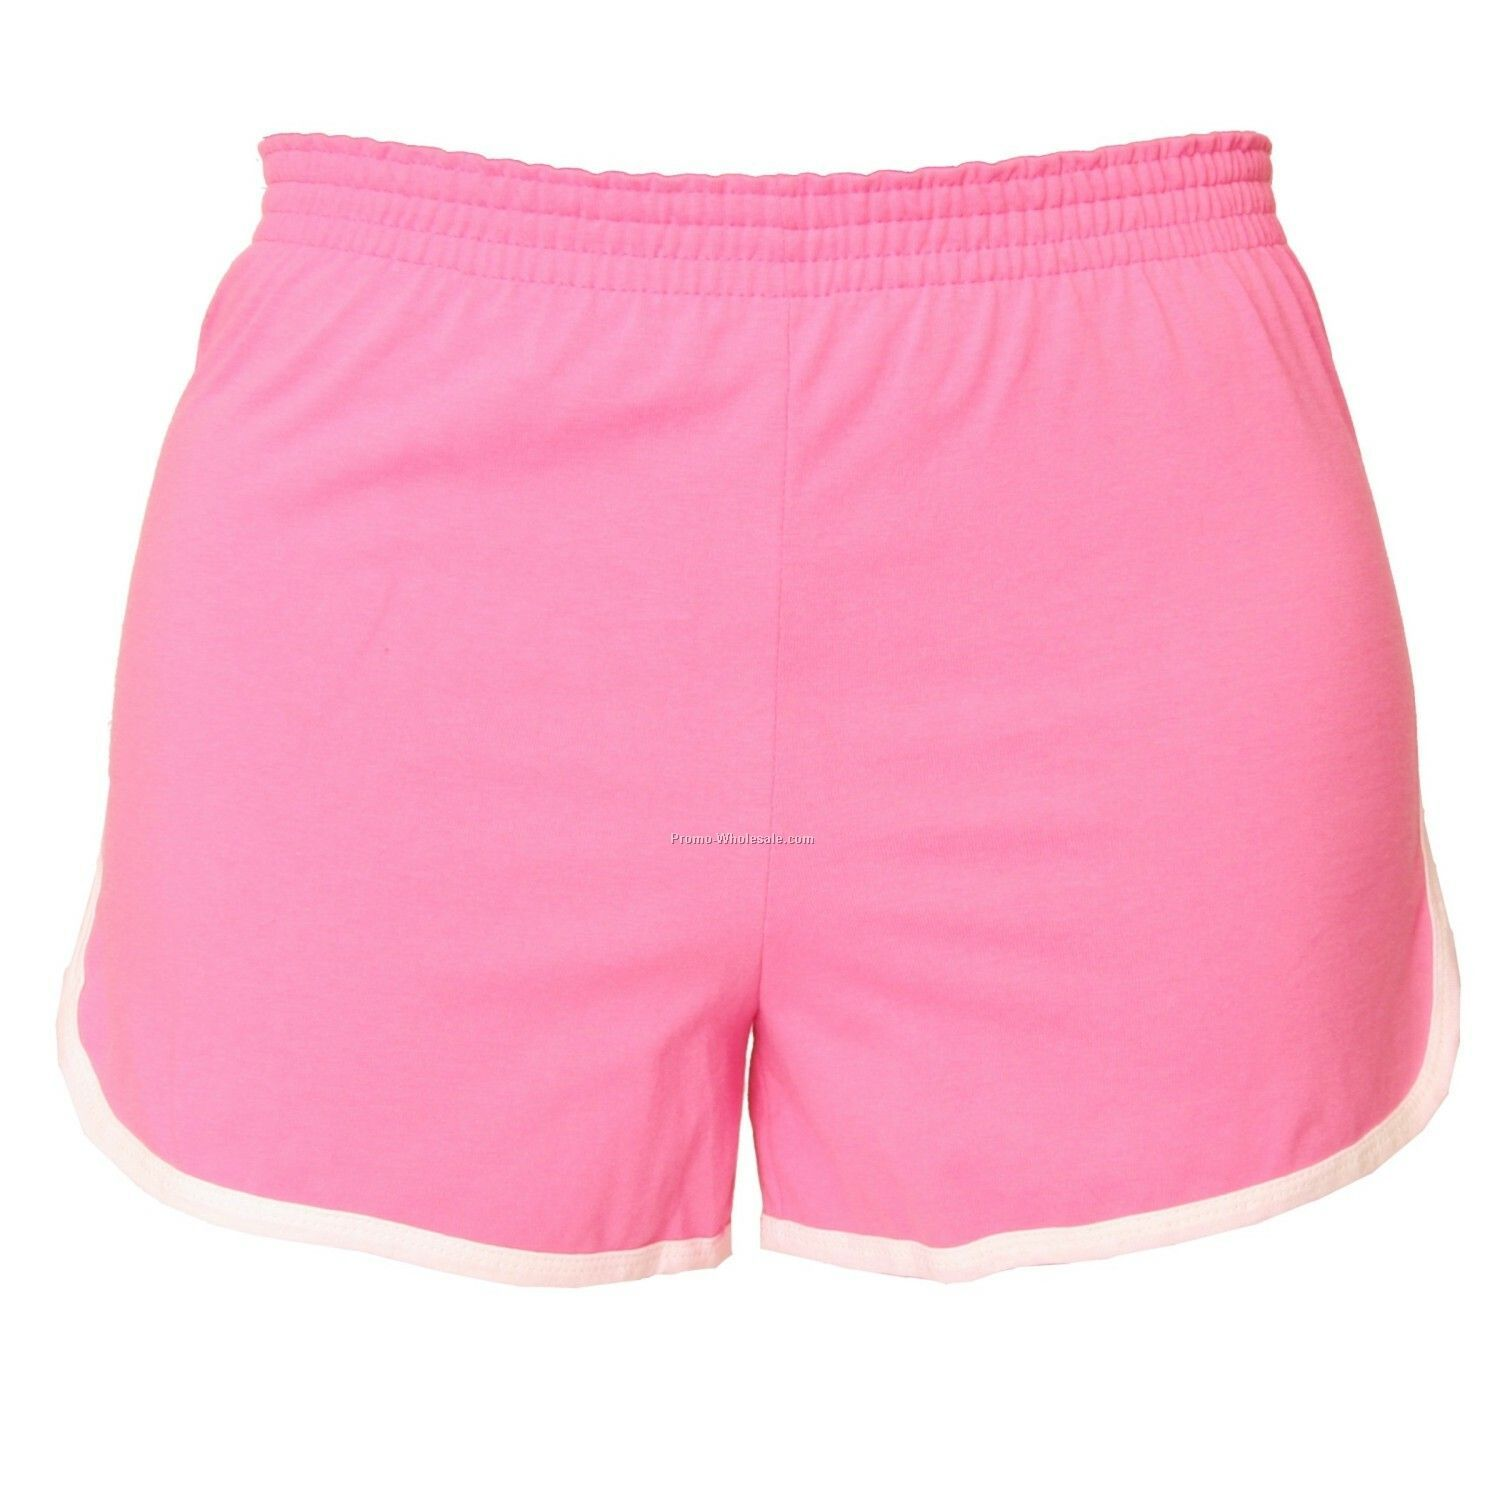 Youths' Pink Retro Shorts (Ys-yl)